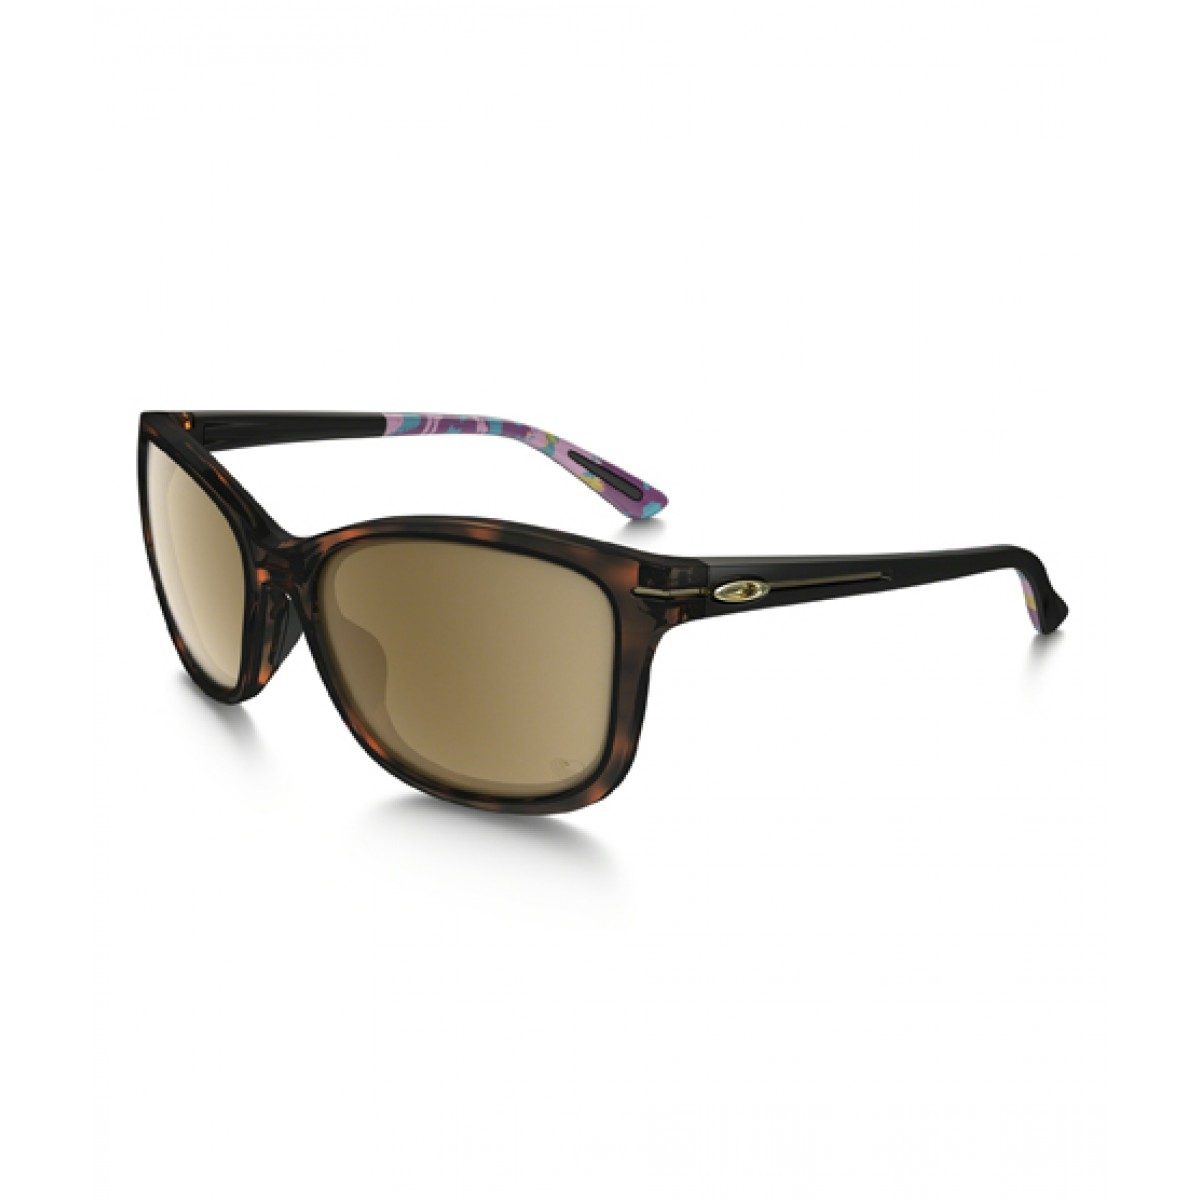 04c9f26e39 Oakley Womens Non-Polarized Sunglasses Price in Pakistan